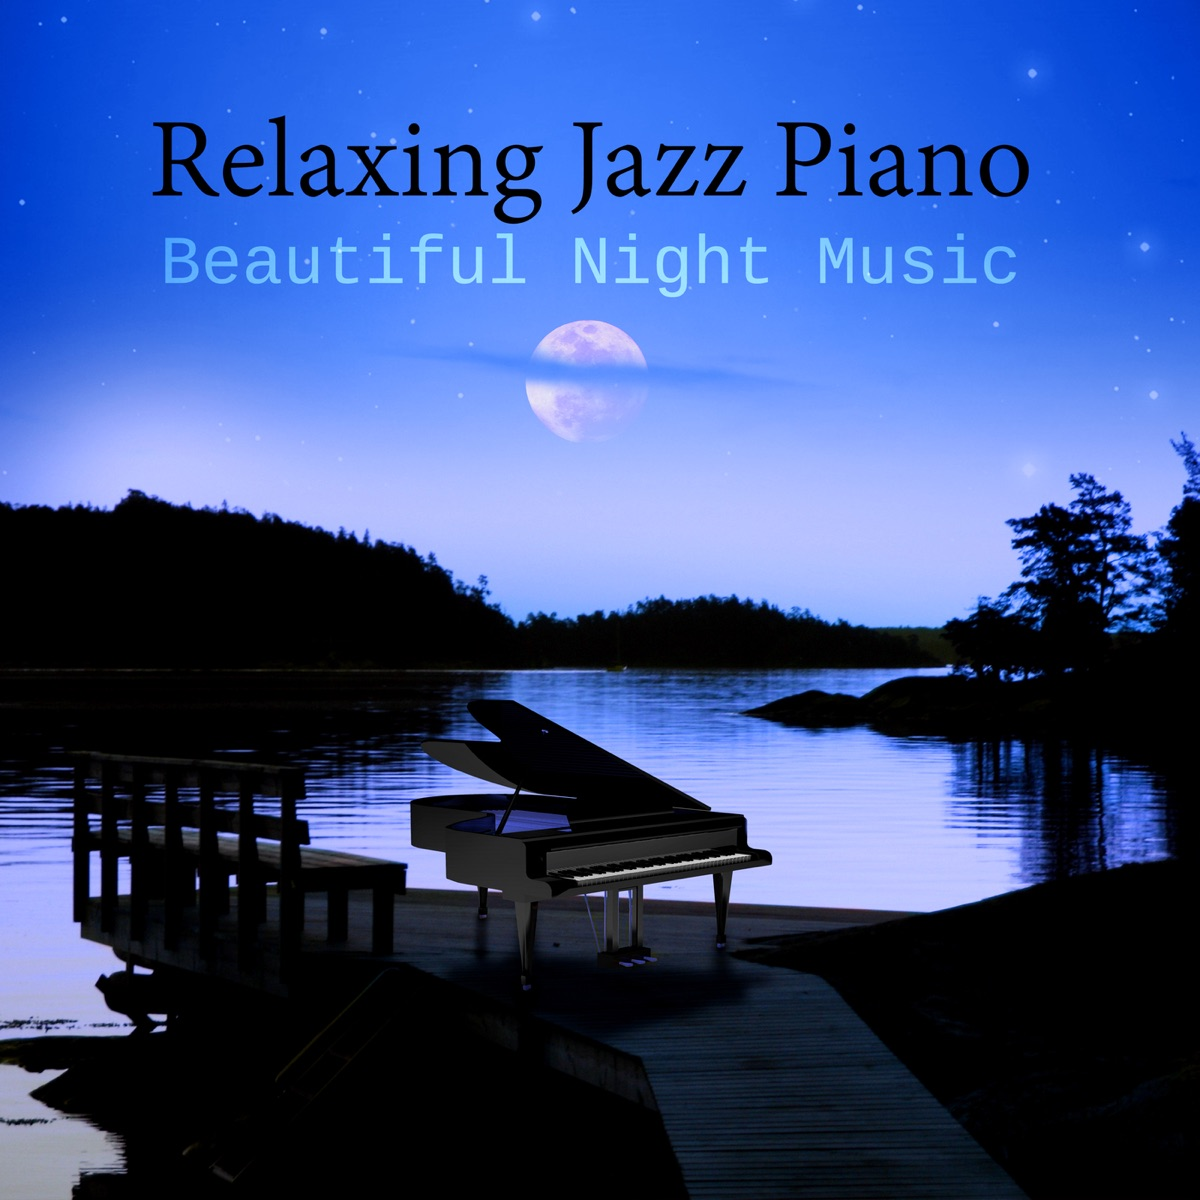 Relaxing Jazz Piano – Ultimate Relaxation After Dark